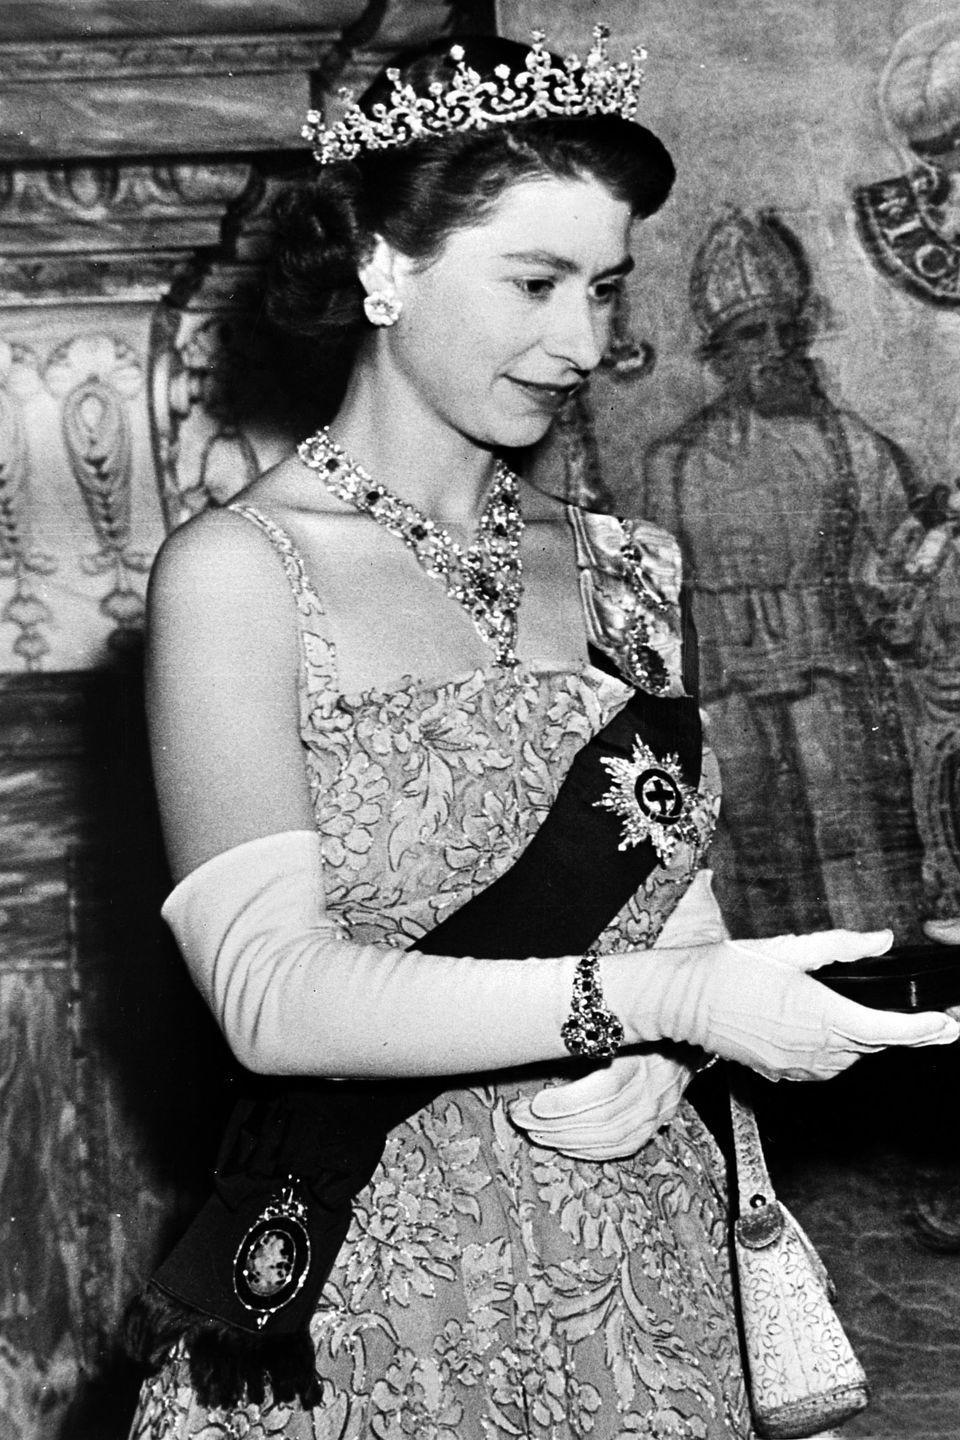 <p>The queen is dripping in diamonds from her tiara to her wrist for a royal event. </p>